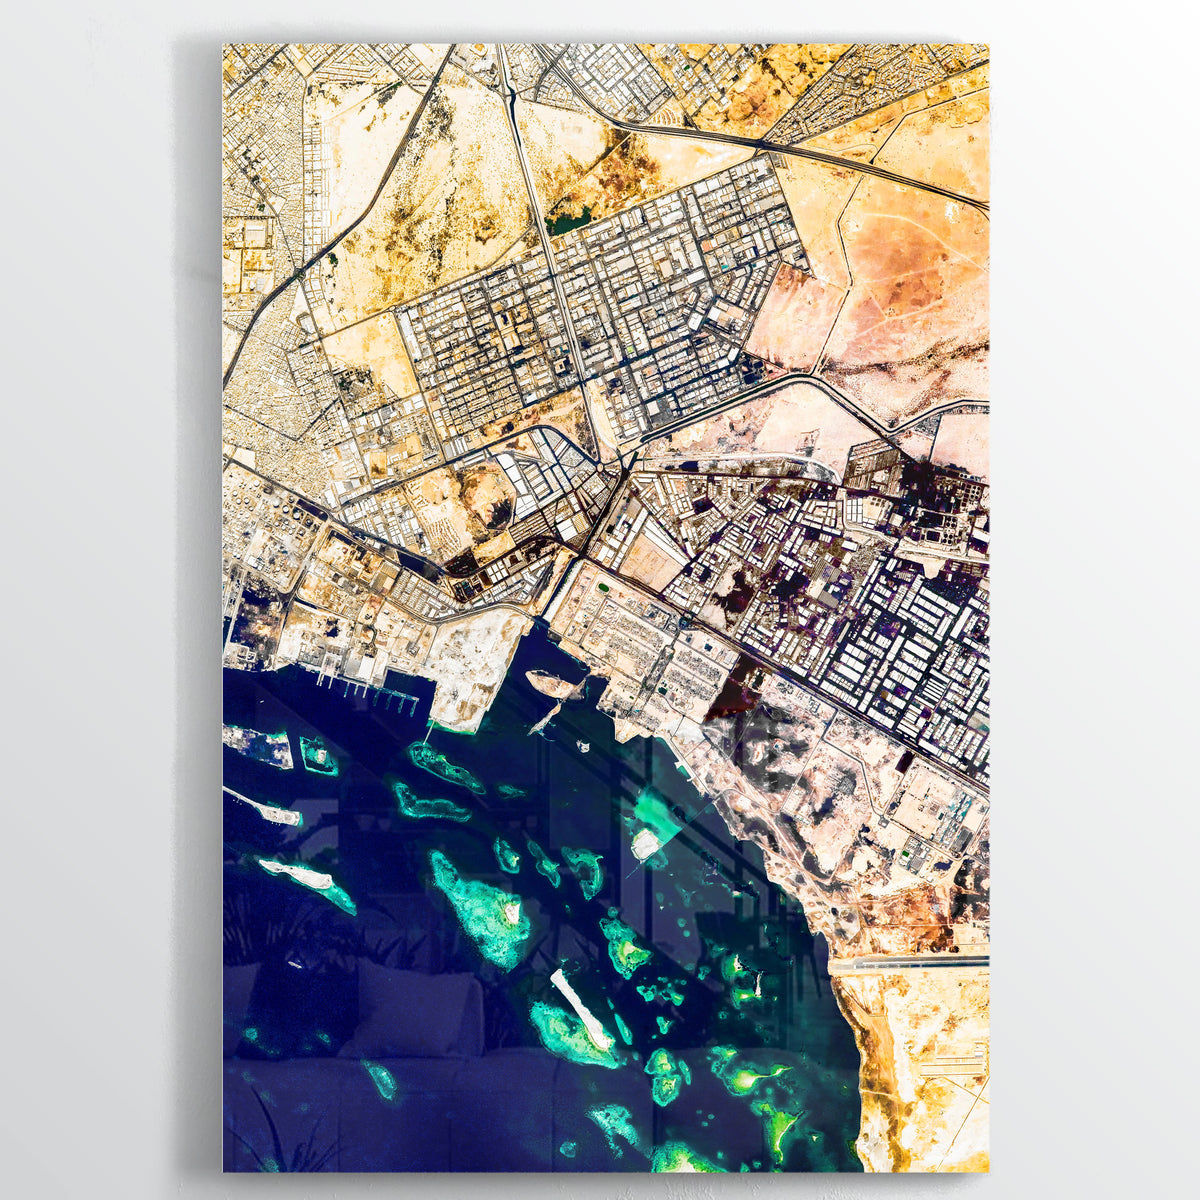 Jeddah Earth Photography - Floating Acrylic Art